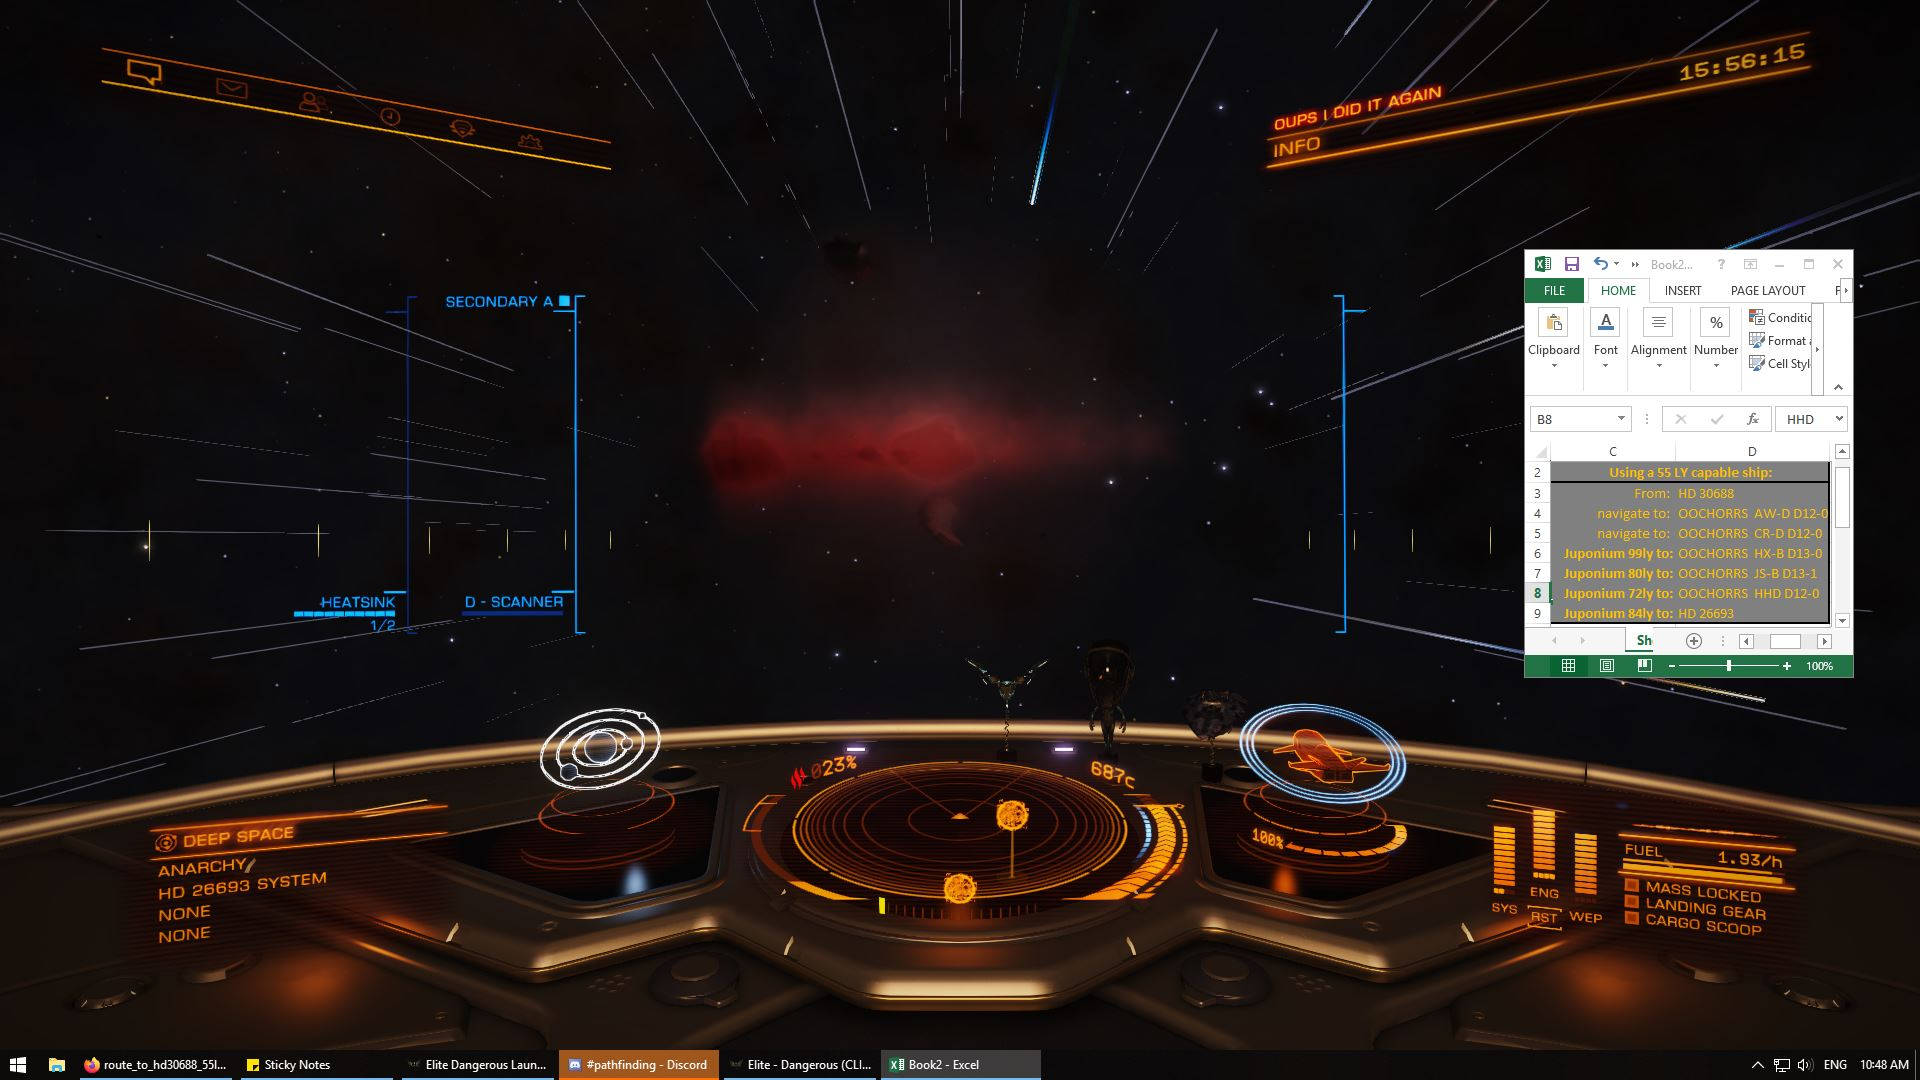 route to hd26693_55ly.JPG